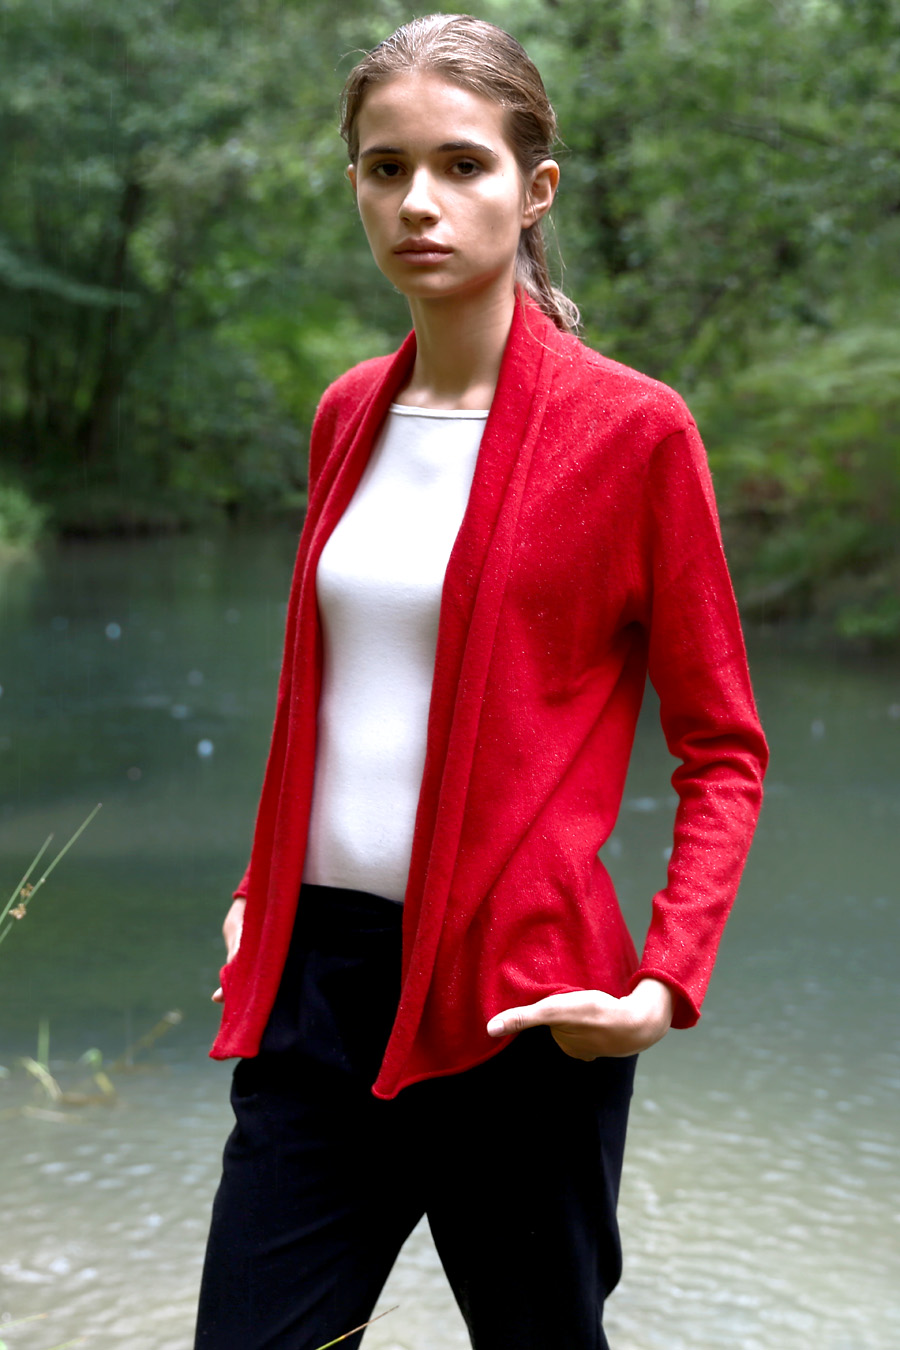 Collection Femme Cardigan Cachemire - Automne hiver 2015/16